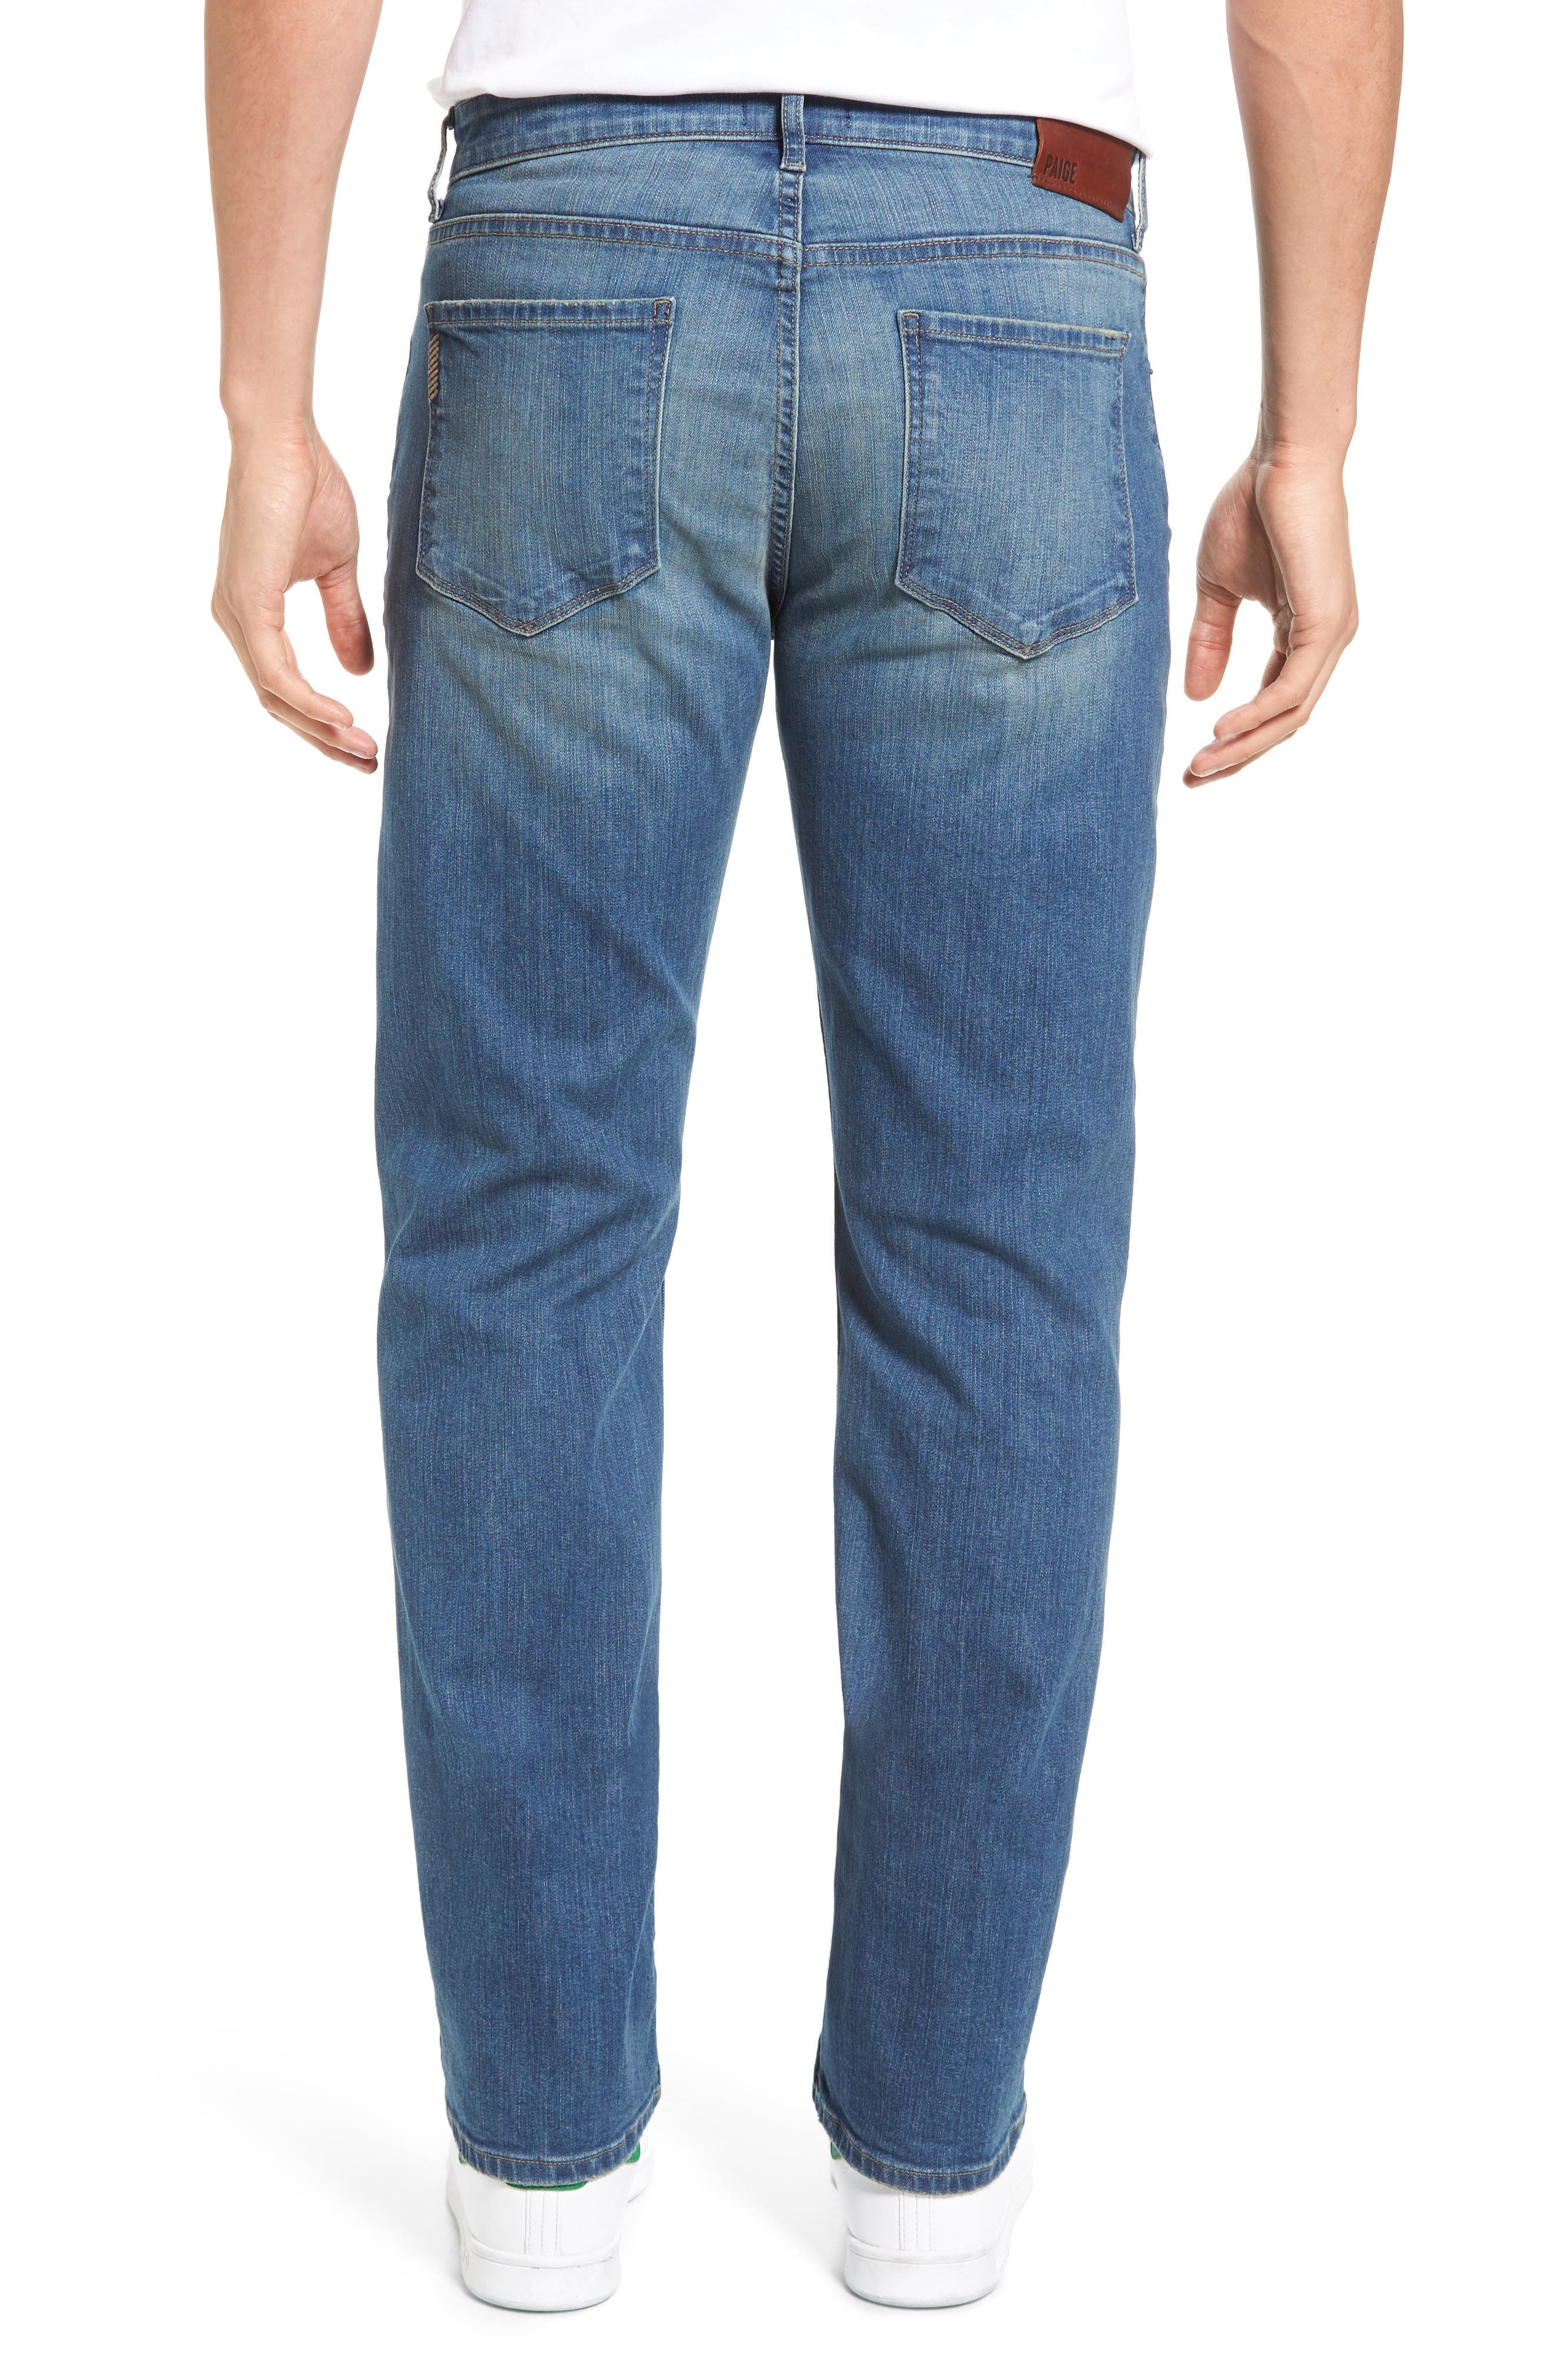 Legacy - Doheny Relaxed Fit Jeans,                             Alternate thumbnail 2, color,                             400